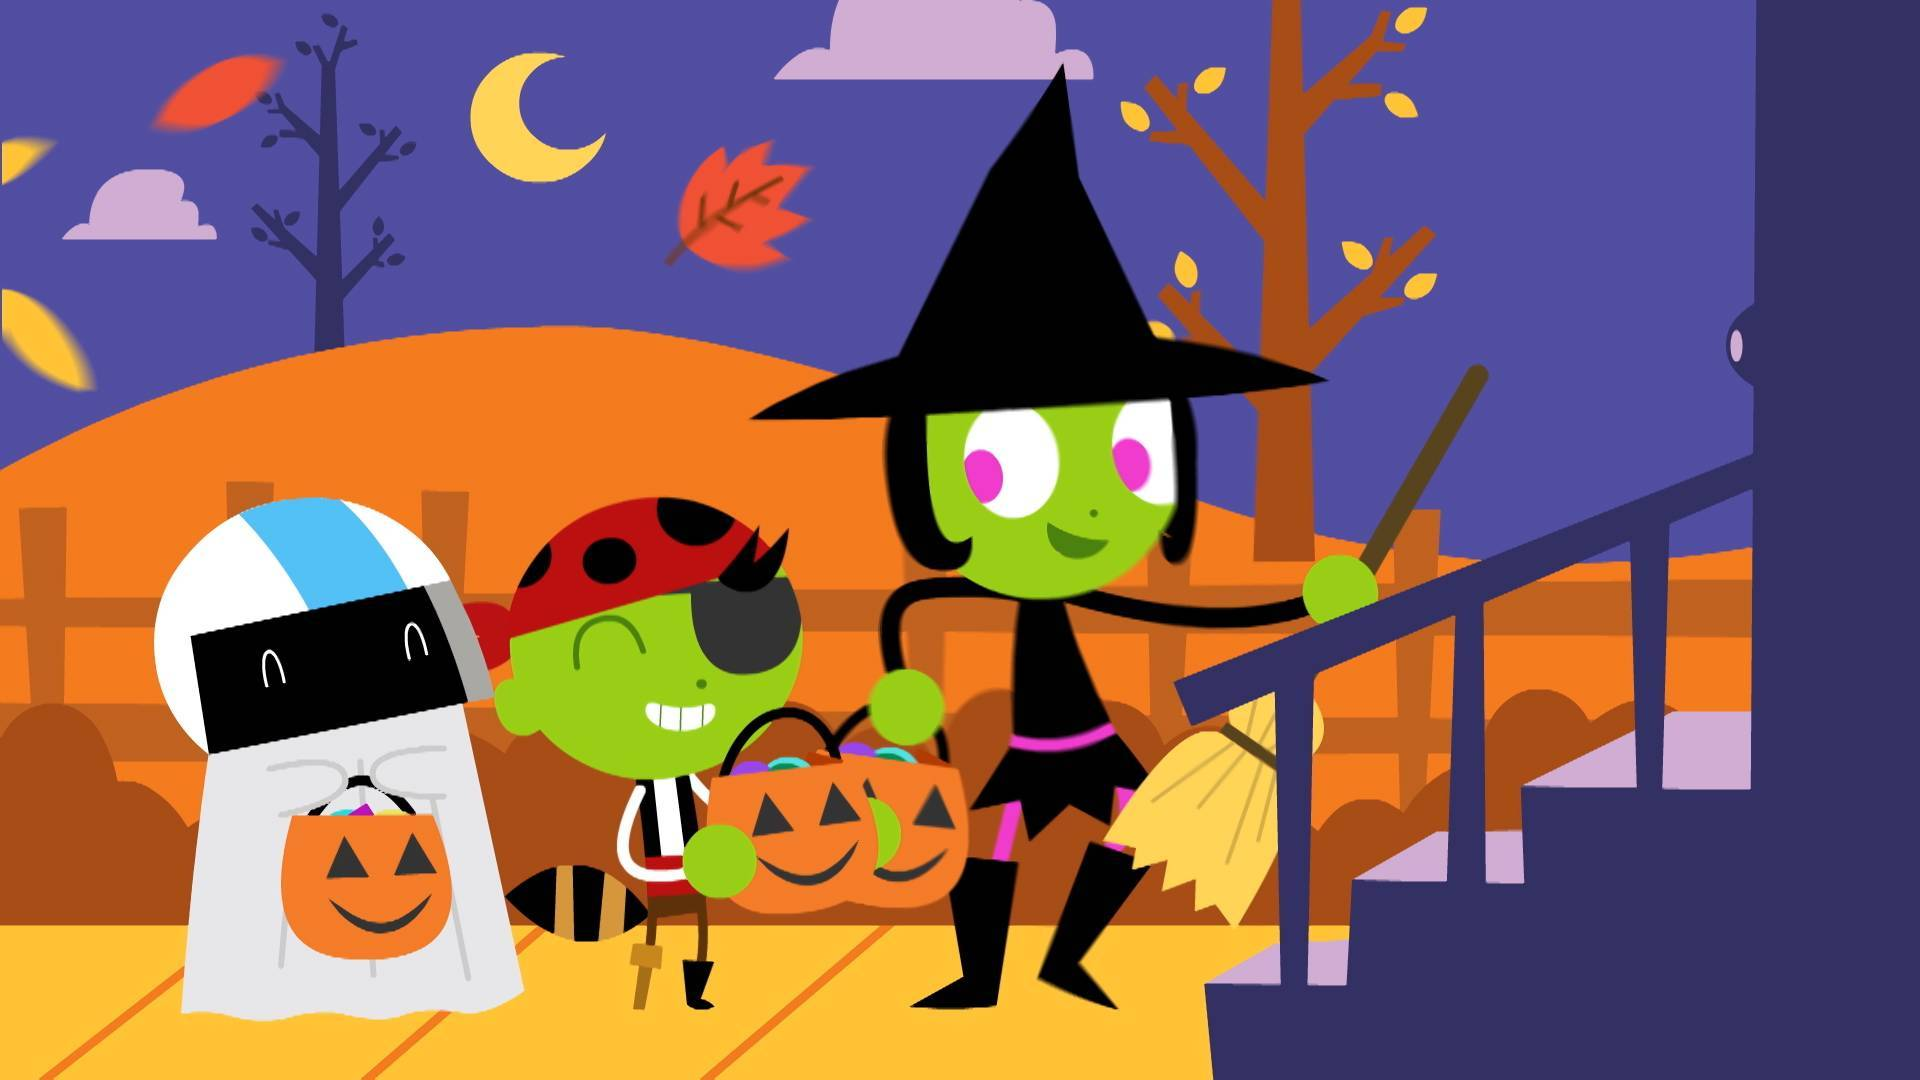 halloween comes to pbs kids with new programming, games and